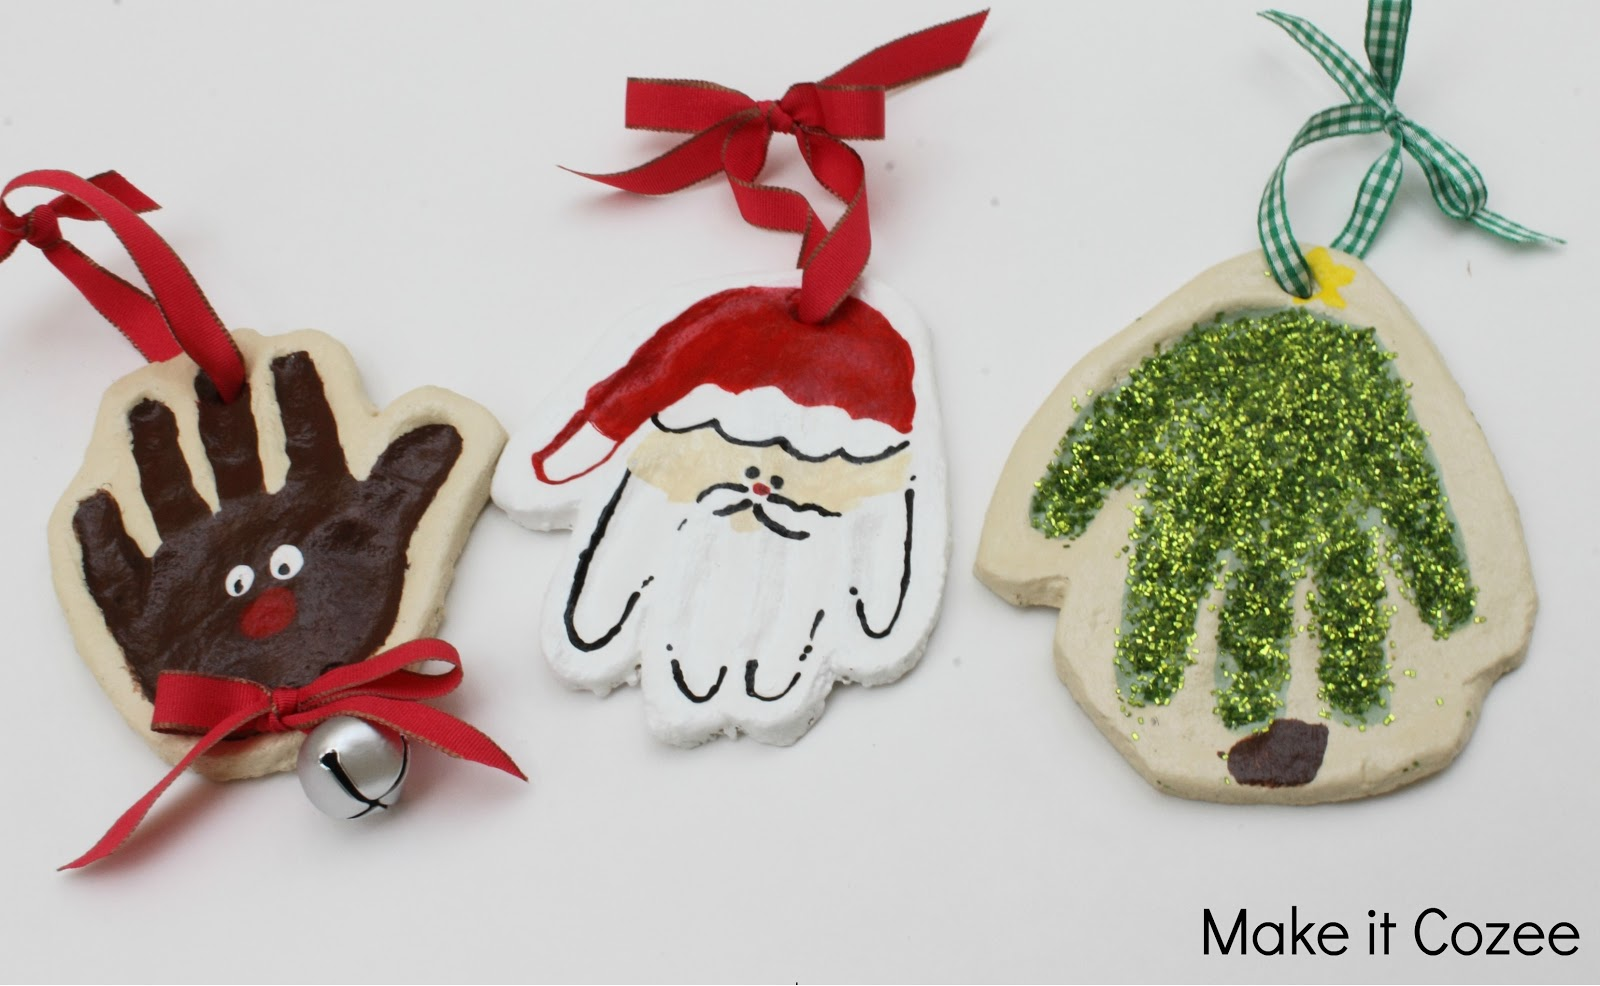 Make It Cozee Santa, Reindeer, Tree Hand Print Ornaments. Christmas Decorations Kmart Australia. Full Christmas Tree Ornament Sets. Christmas Tree Decorations In The Philippines. Christmas Yard Decorations Train. Personalised Photo Christmas Decorations Uk. Where Can I Buy Christmas Decorations In Dubai. Christmas Crafts Made From Toilet Paper Rolls. White Christmas Ceiling Decorations